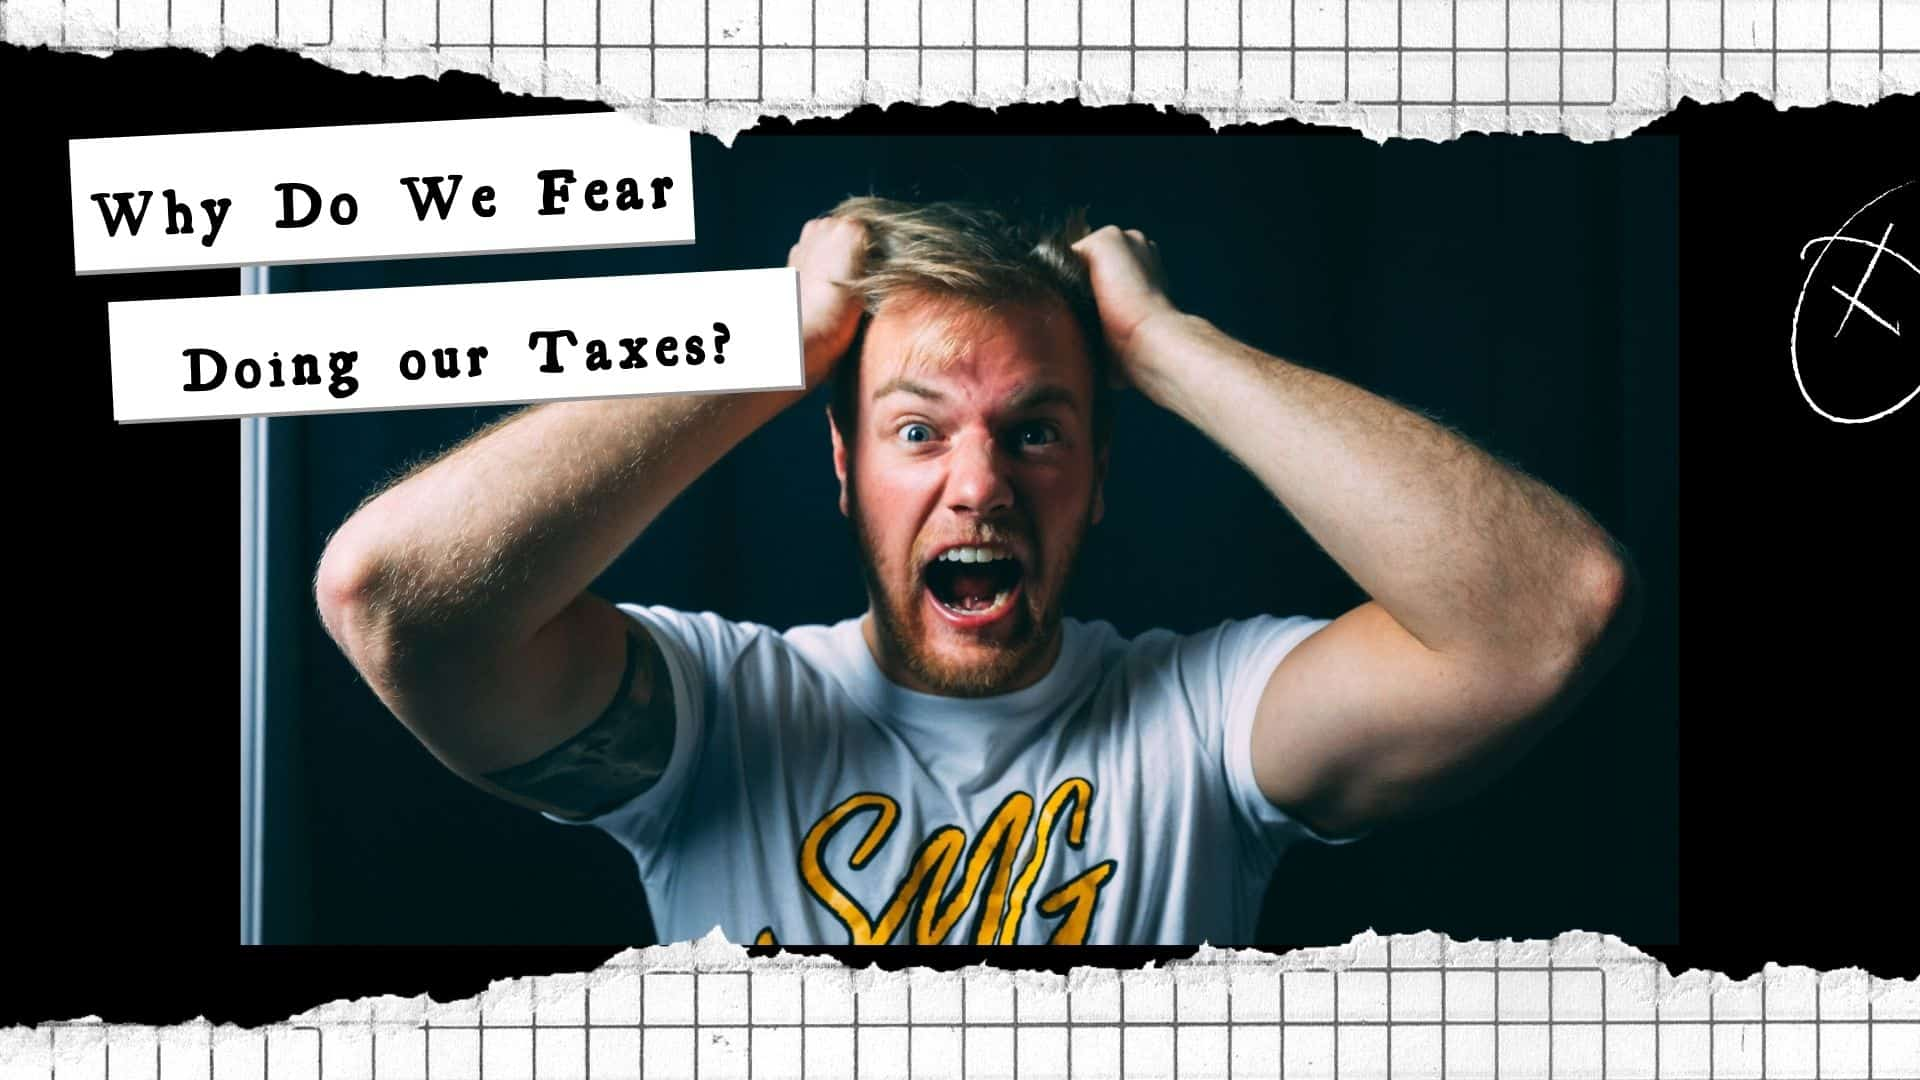 Why do we fear our taxes